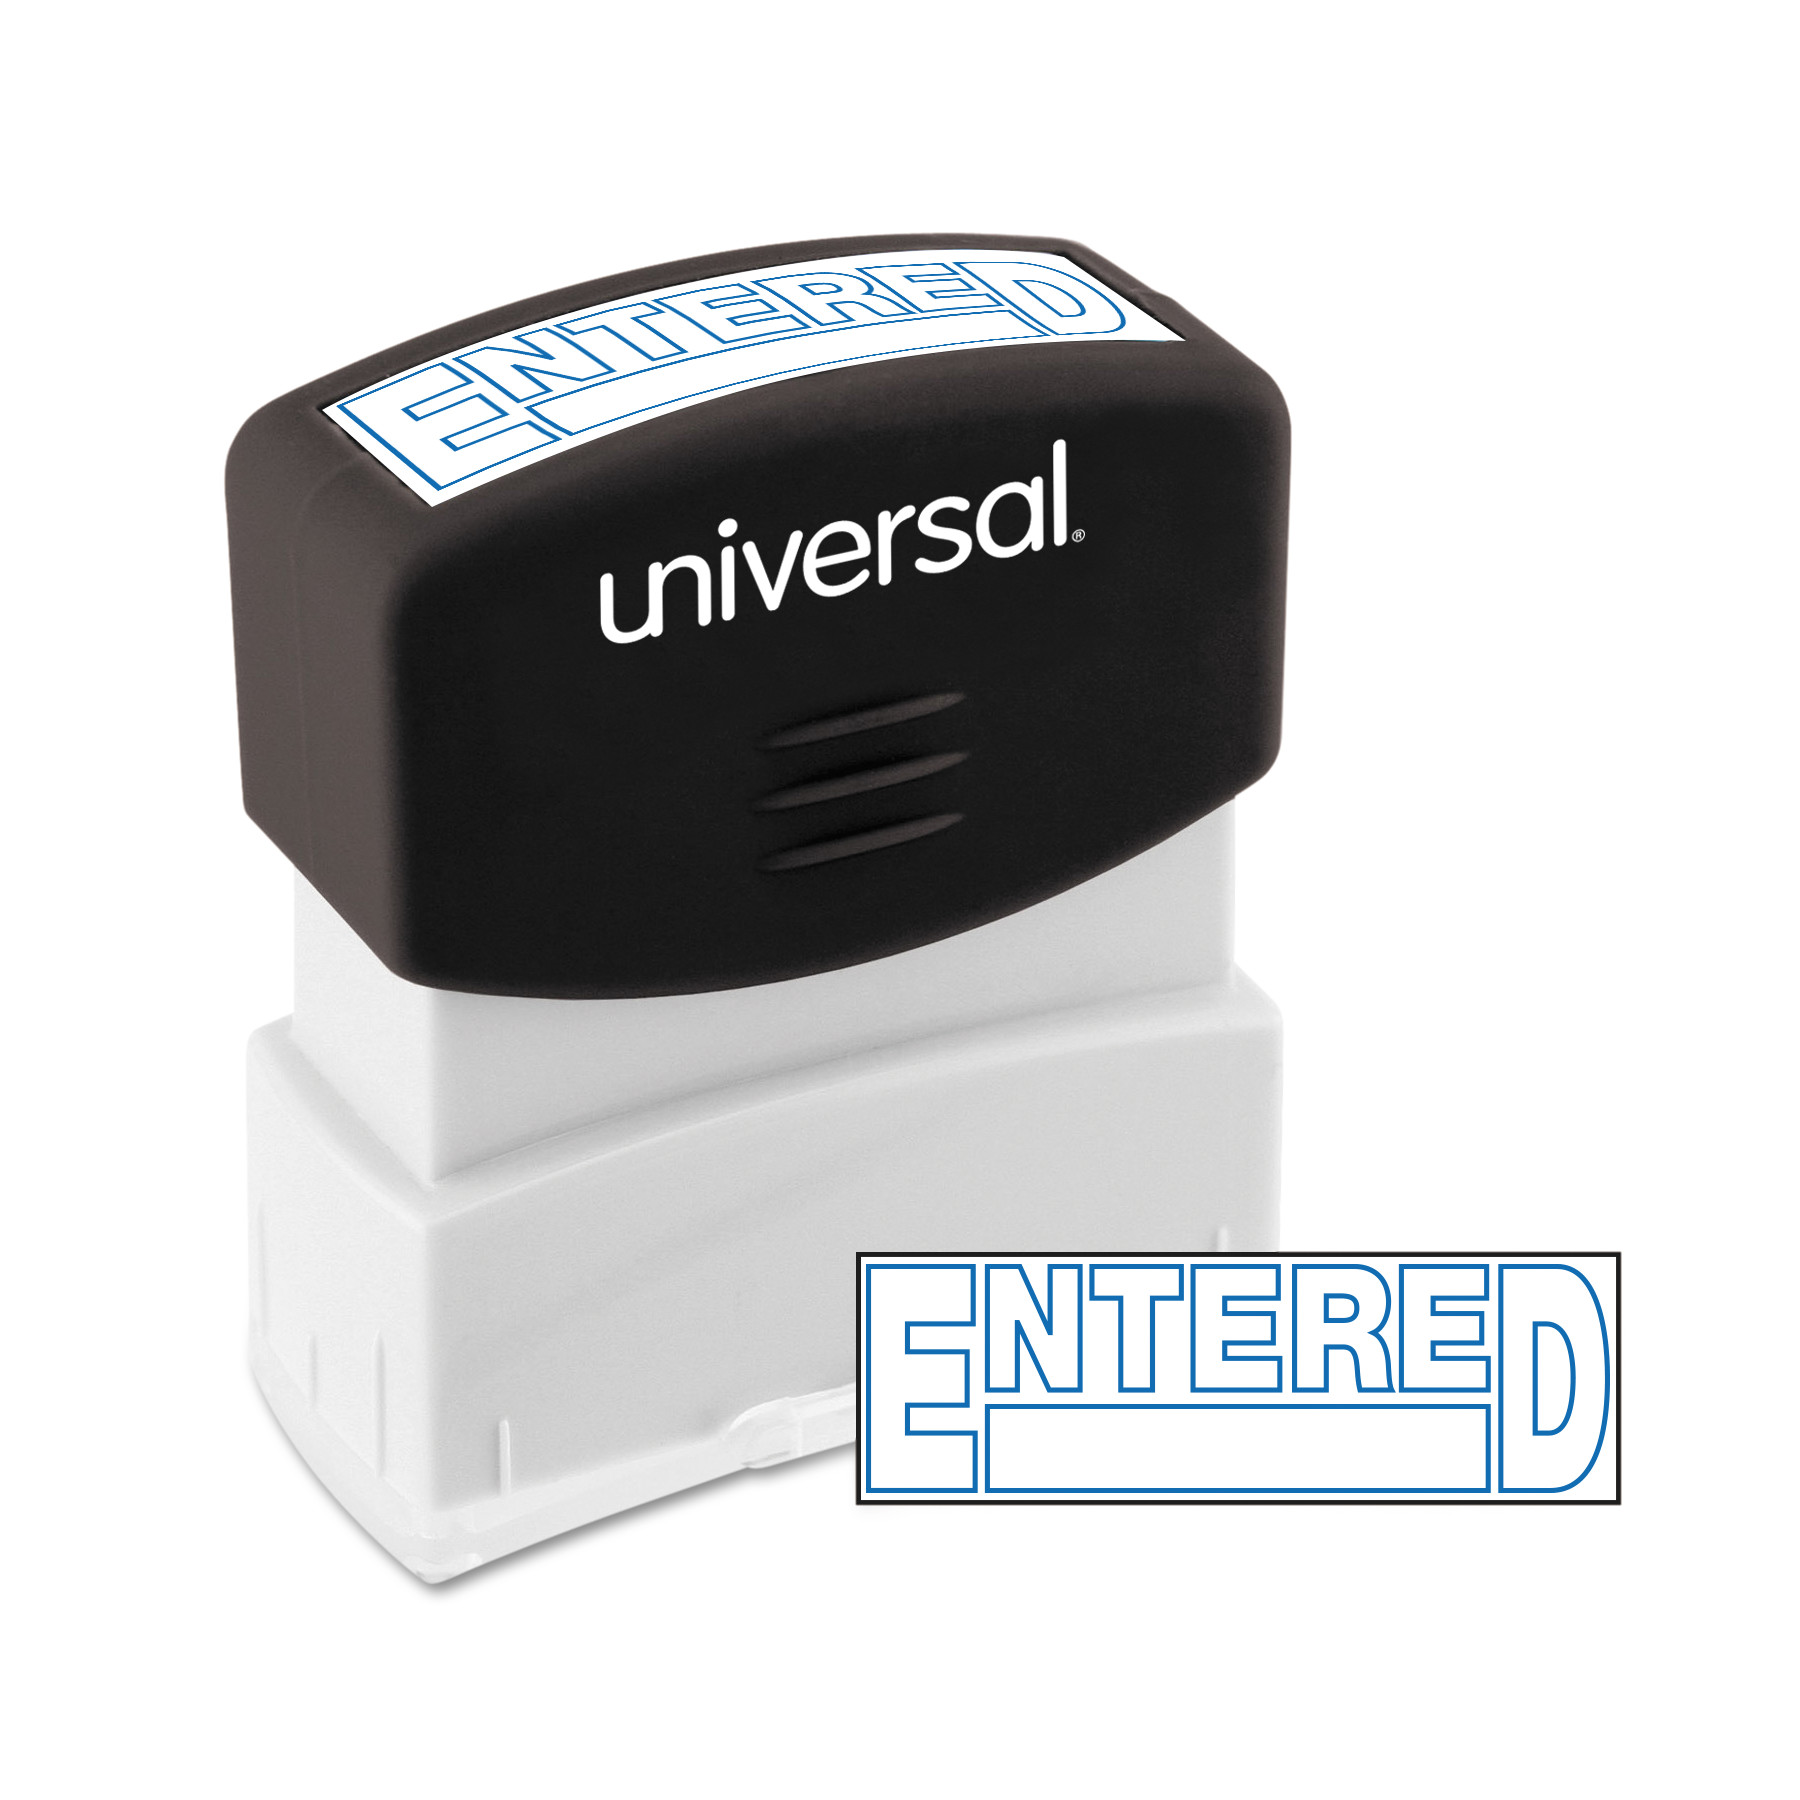 Universal Message Stamp, ENTERED, Pre-Inked One-Color, Blue